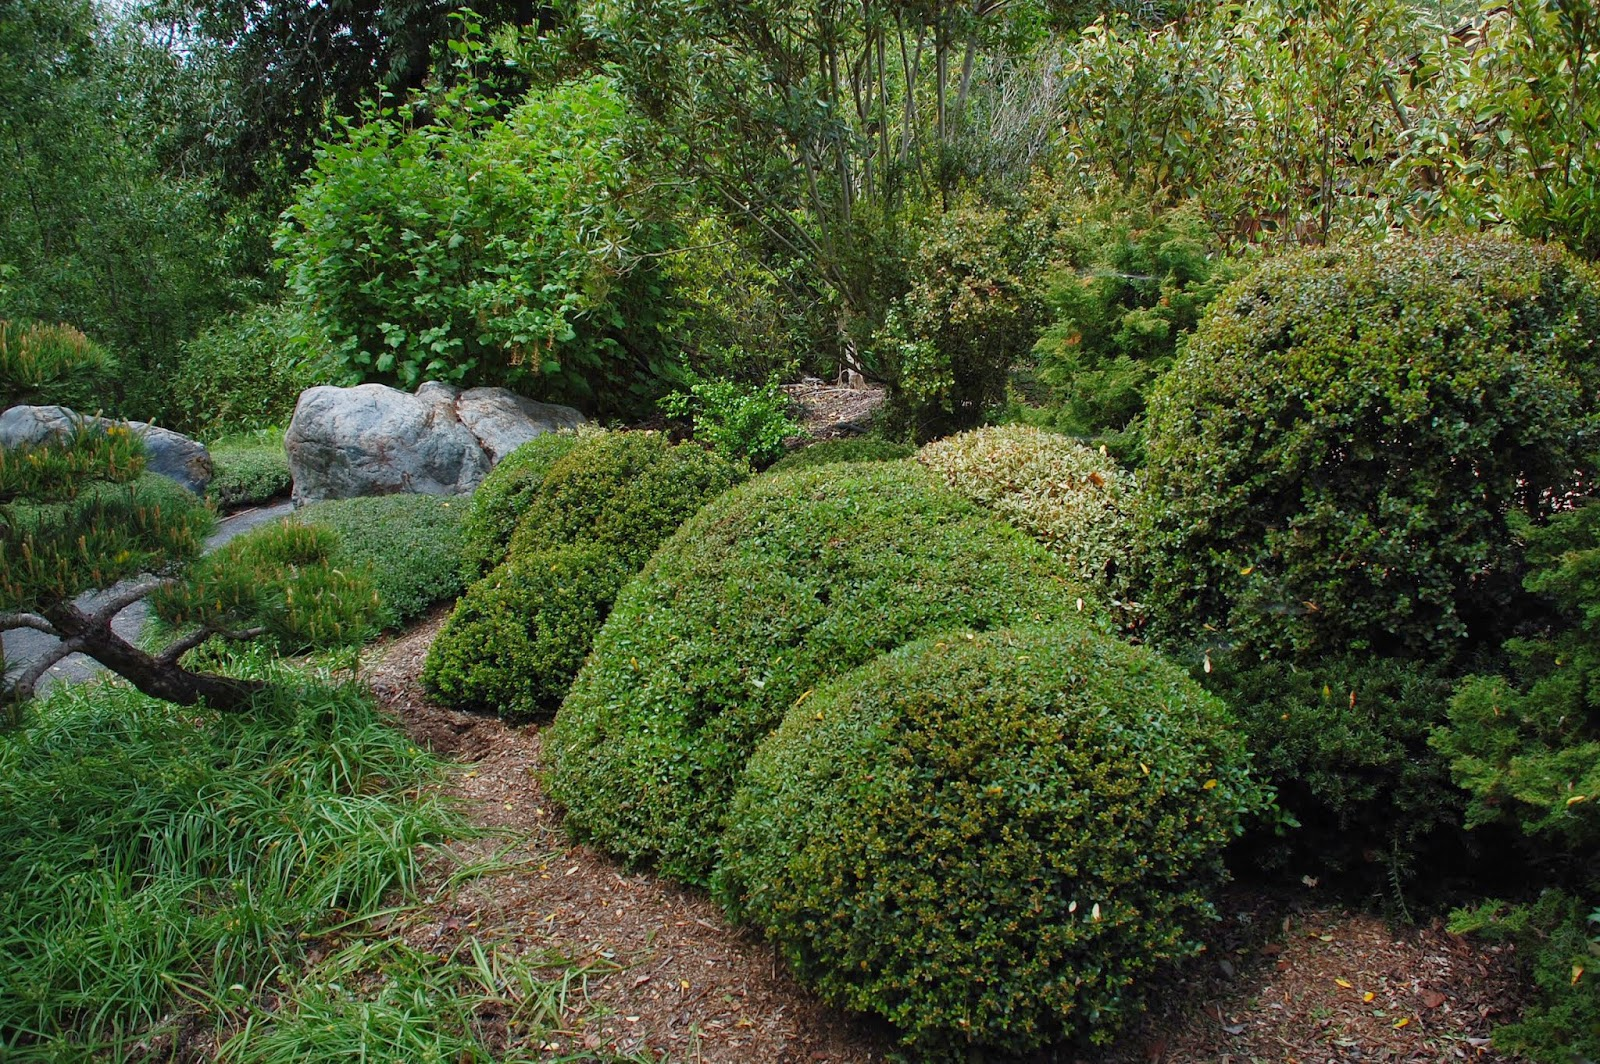 Robert ketchell 39 s blog pruning and the japanese garden for Japanese garden bushes